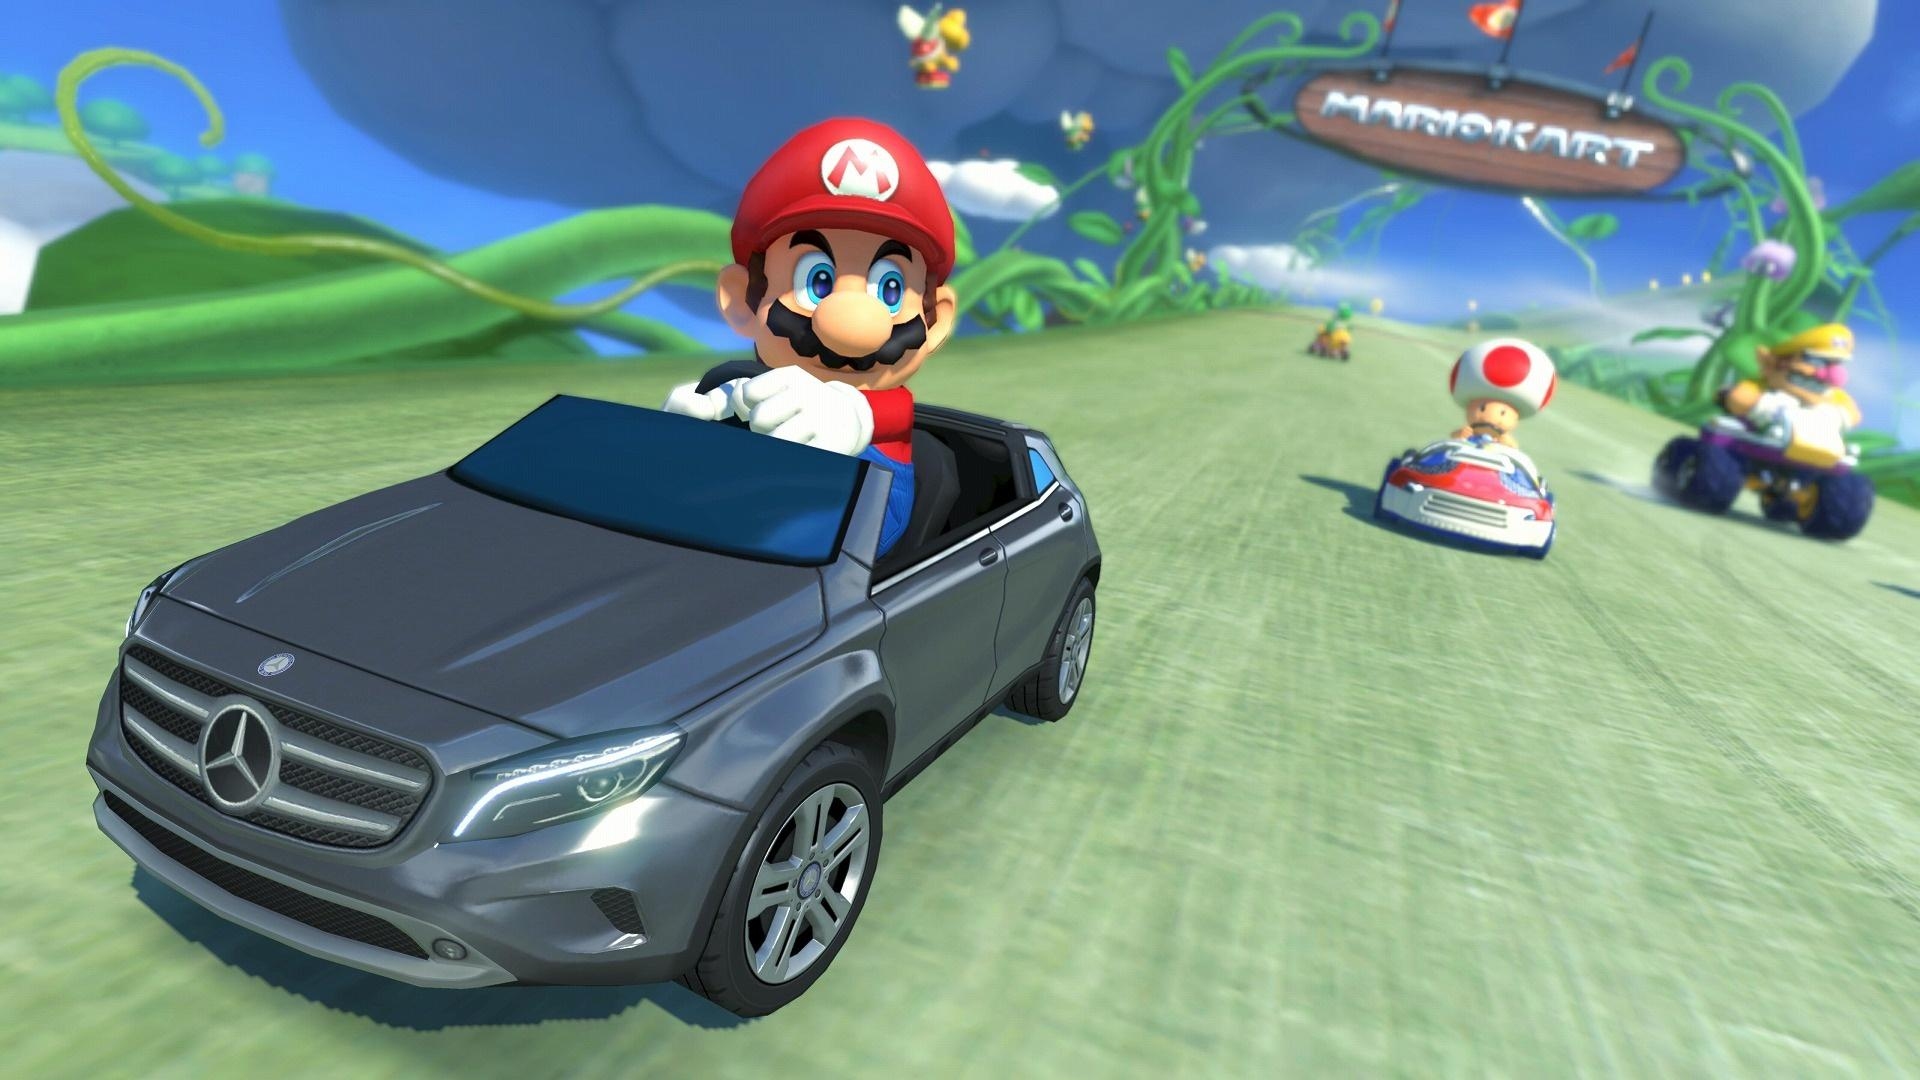 mario kart 8 wiiu test tipps videos news release termin. Black Bedroom Furniture Sets. Home Design Ideas